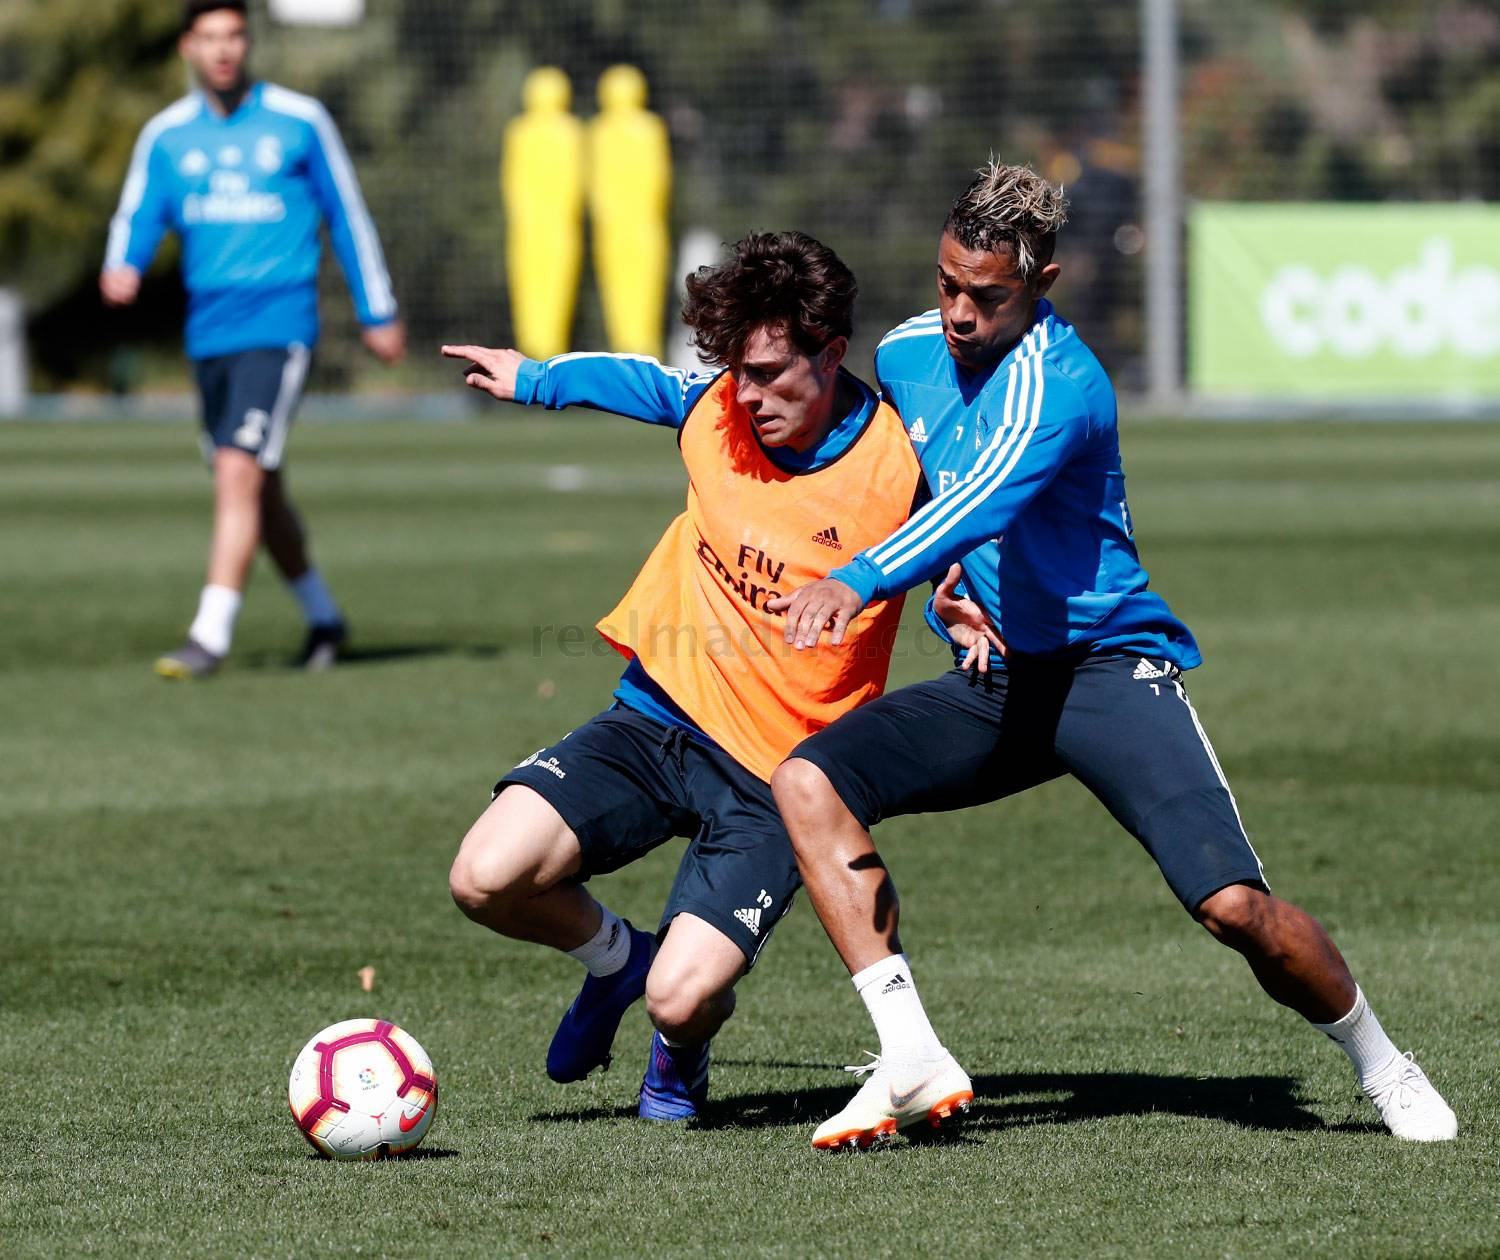 Real Madrid - Entrenamiento del Real Madrid - 13-03-2019